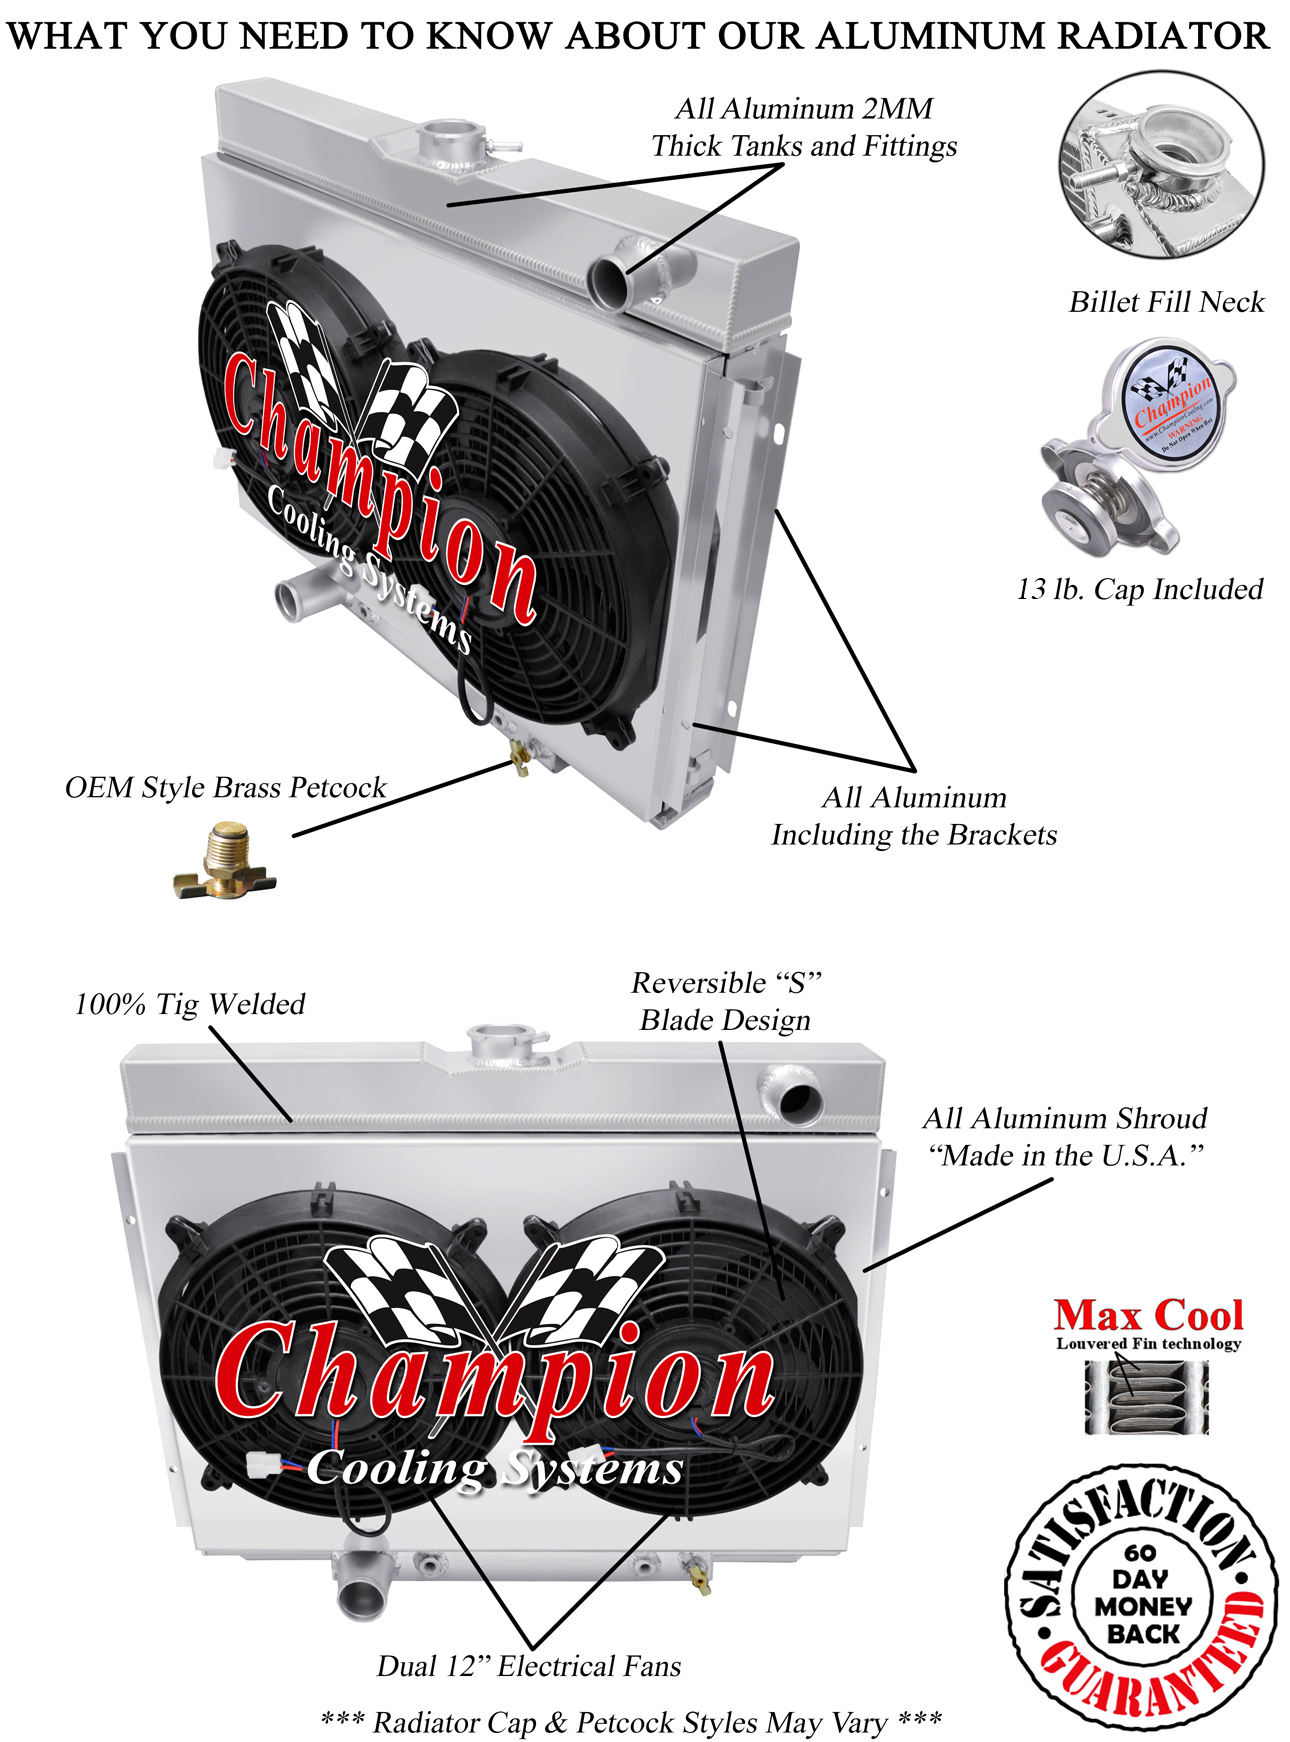 https://www.championcooling.com/photos/Photos%20White/With%20Fans/W-Shroud/379/379_2fs_d_w.jpg